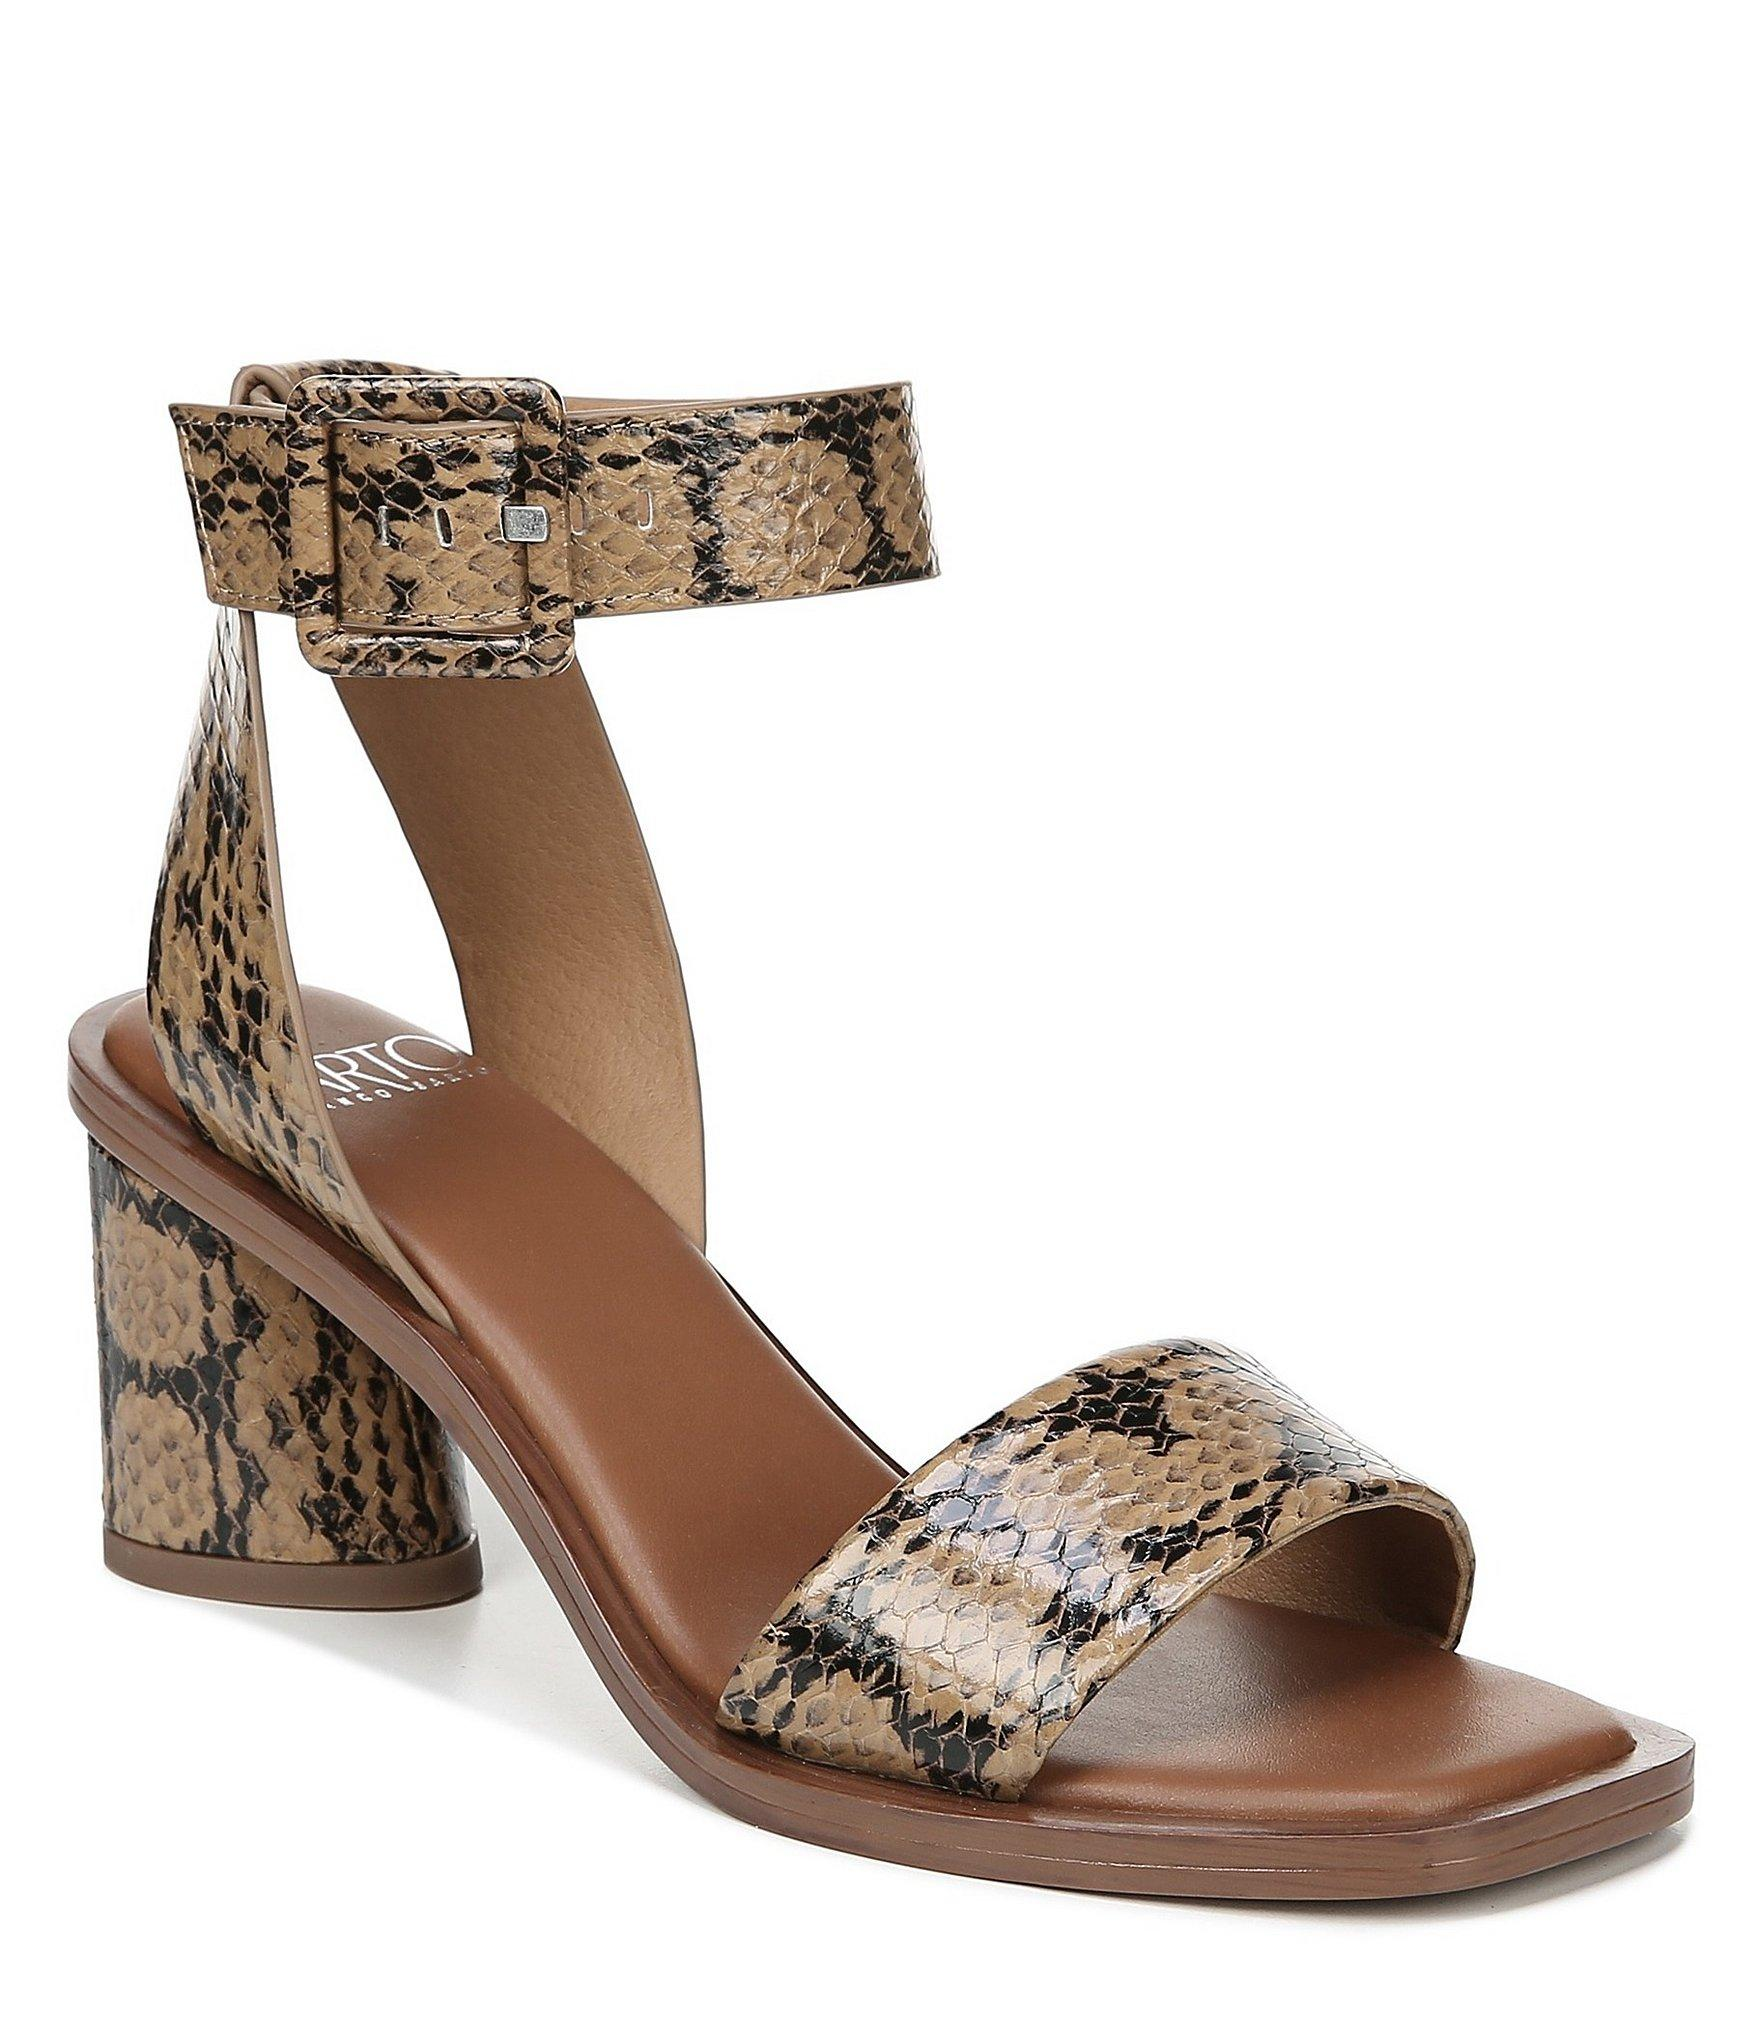 58733e1a4ed Lyst - Franco Sarto Sarto By Risa Snake Print Leather Sandals in Brown